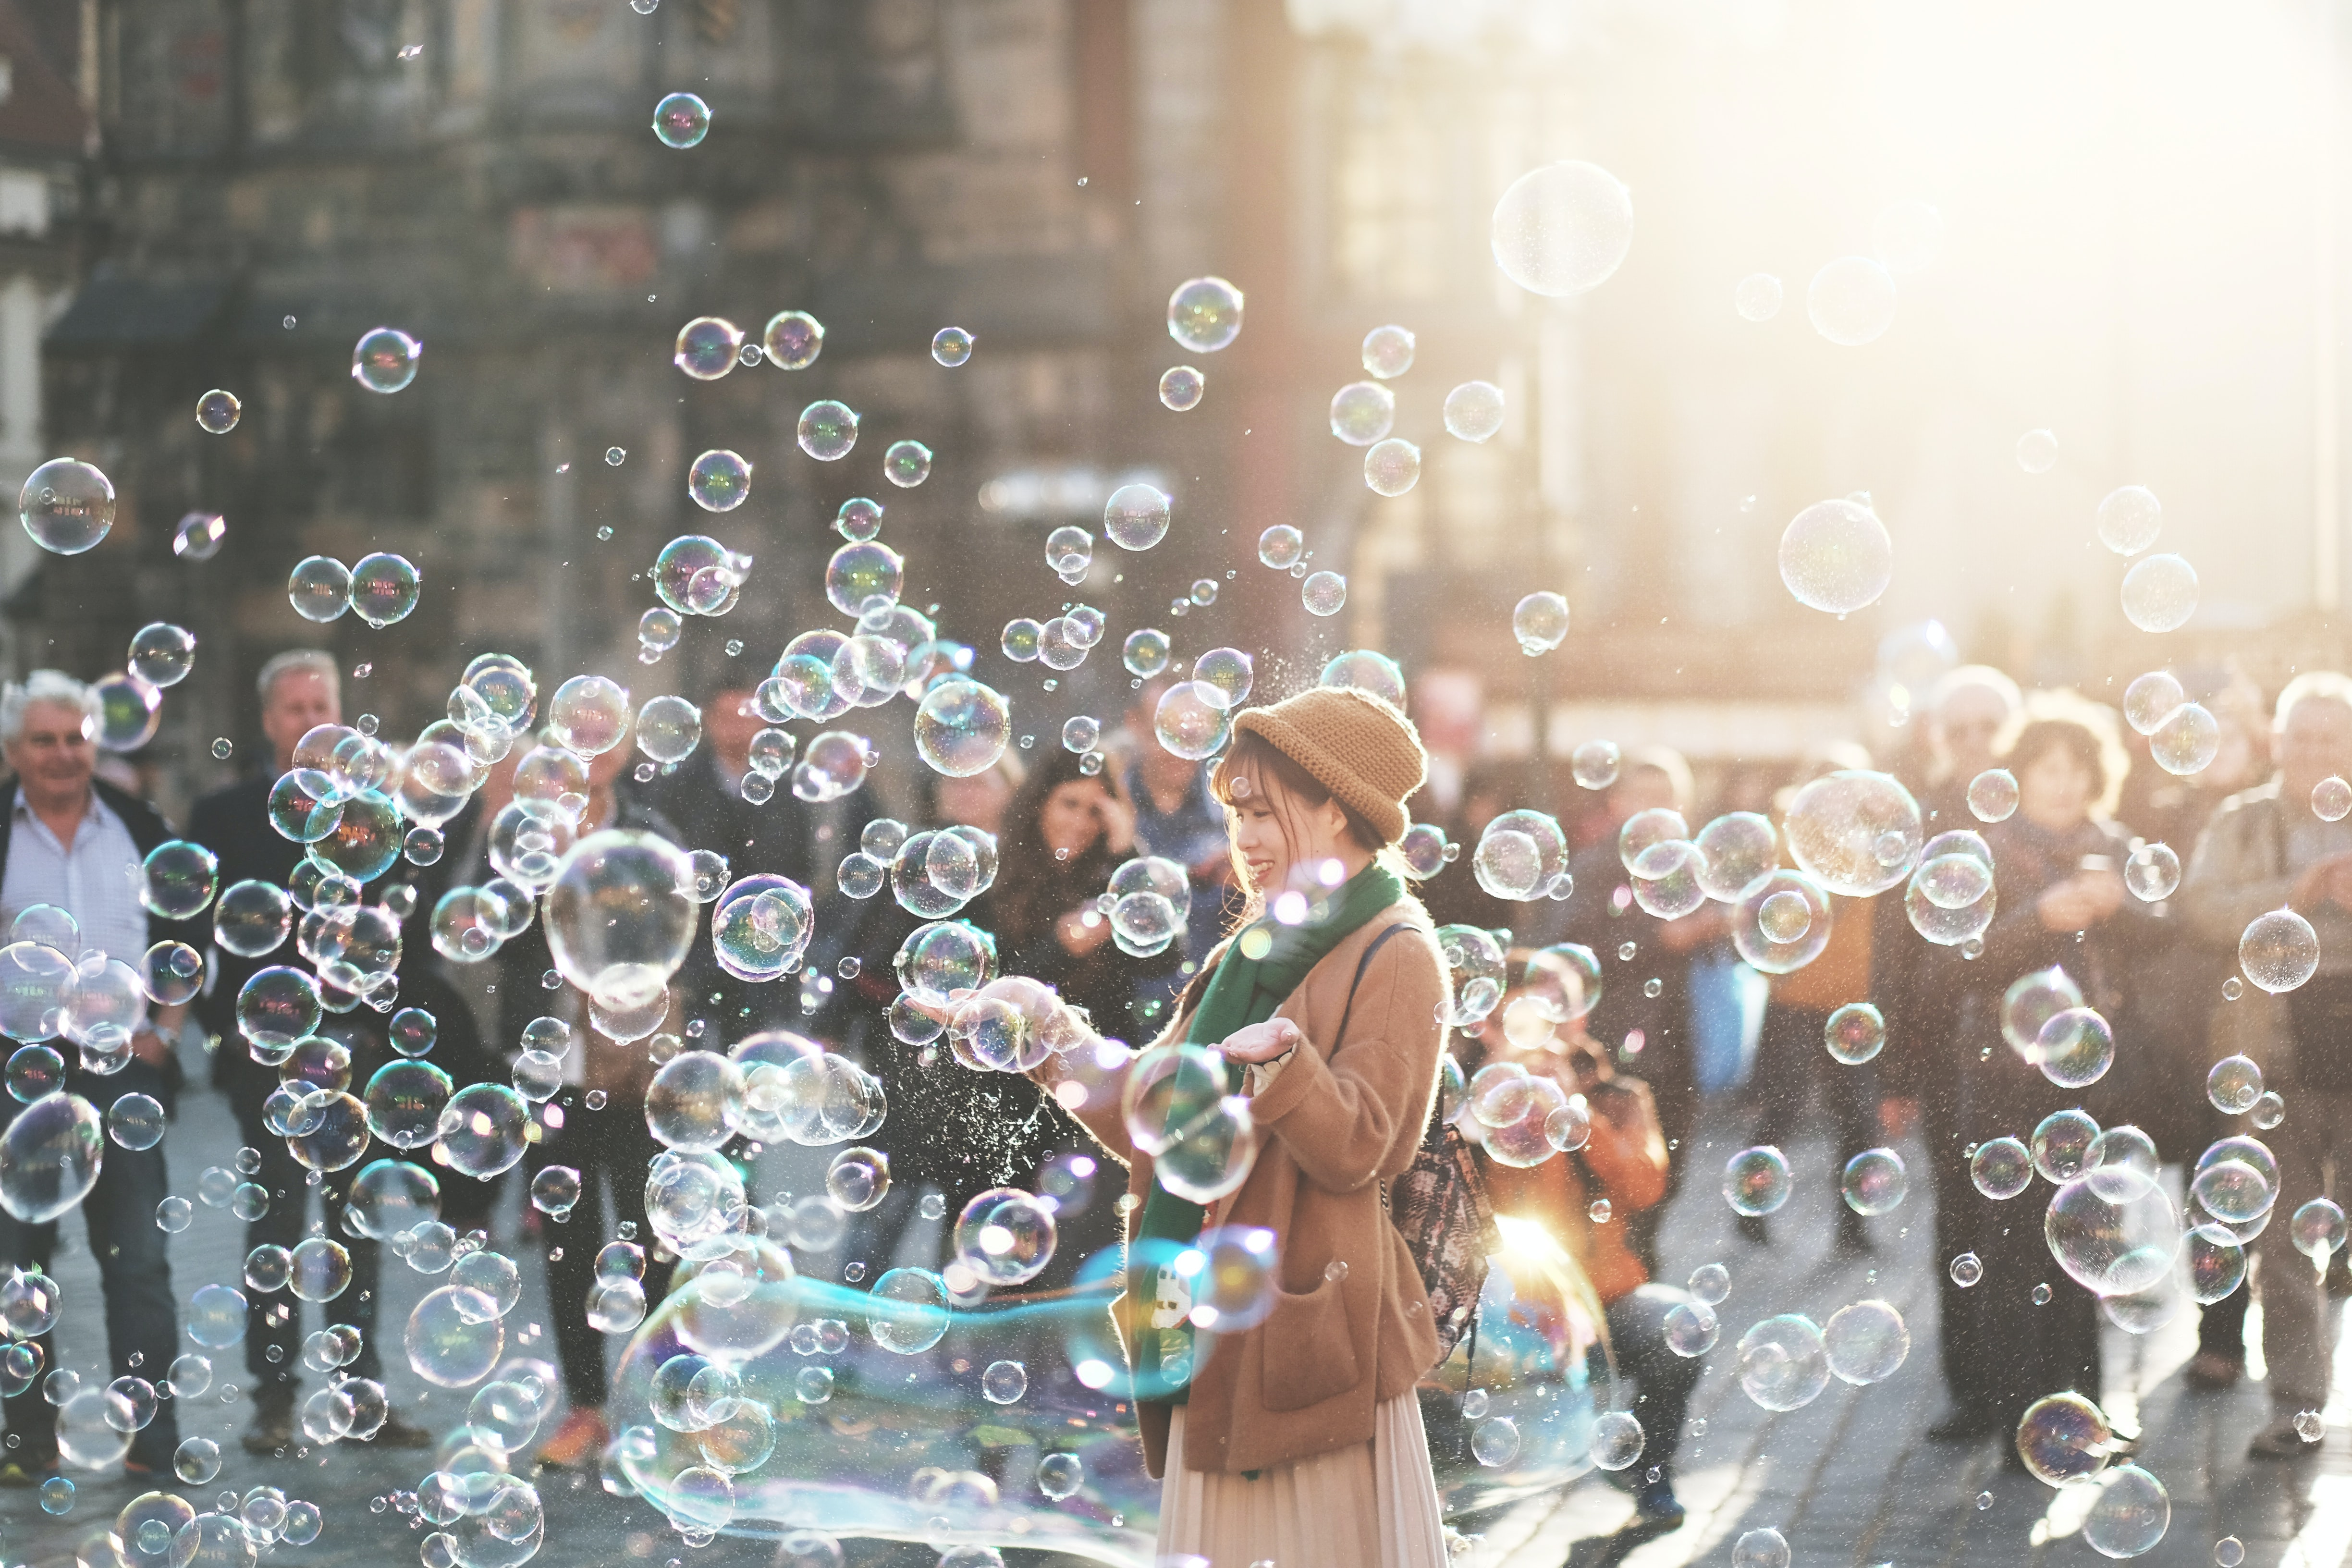 Girl with bubbles in a city